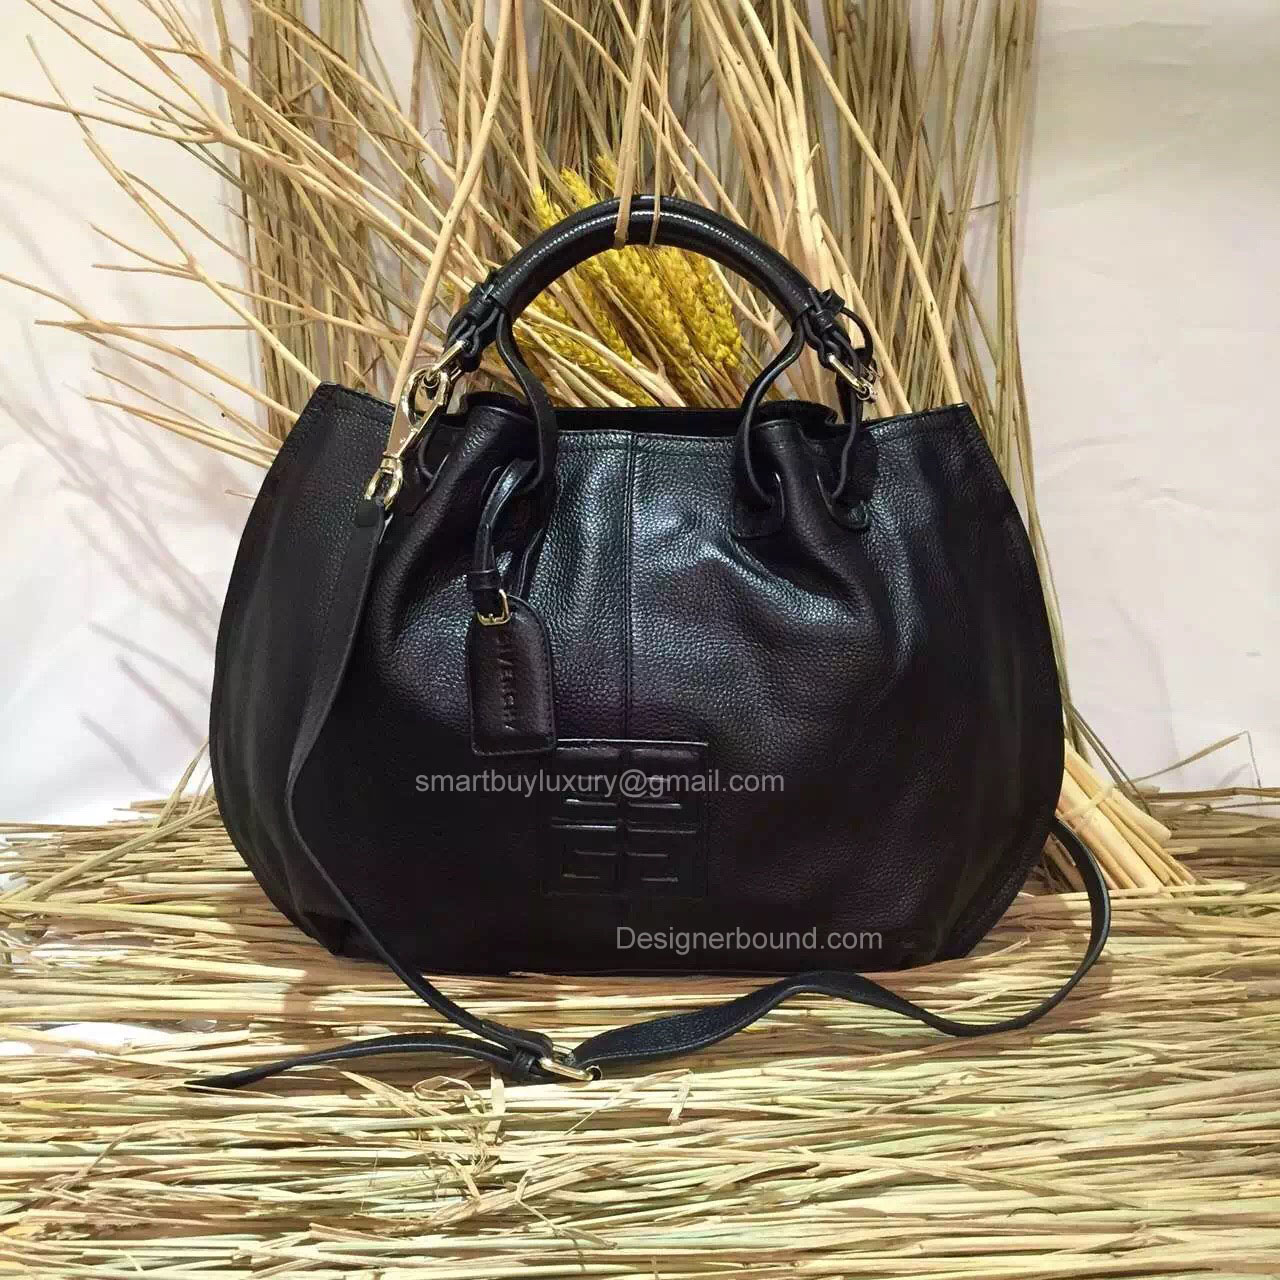 Givenchy Black Handbag Embossed Logo 286128